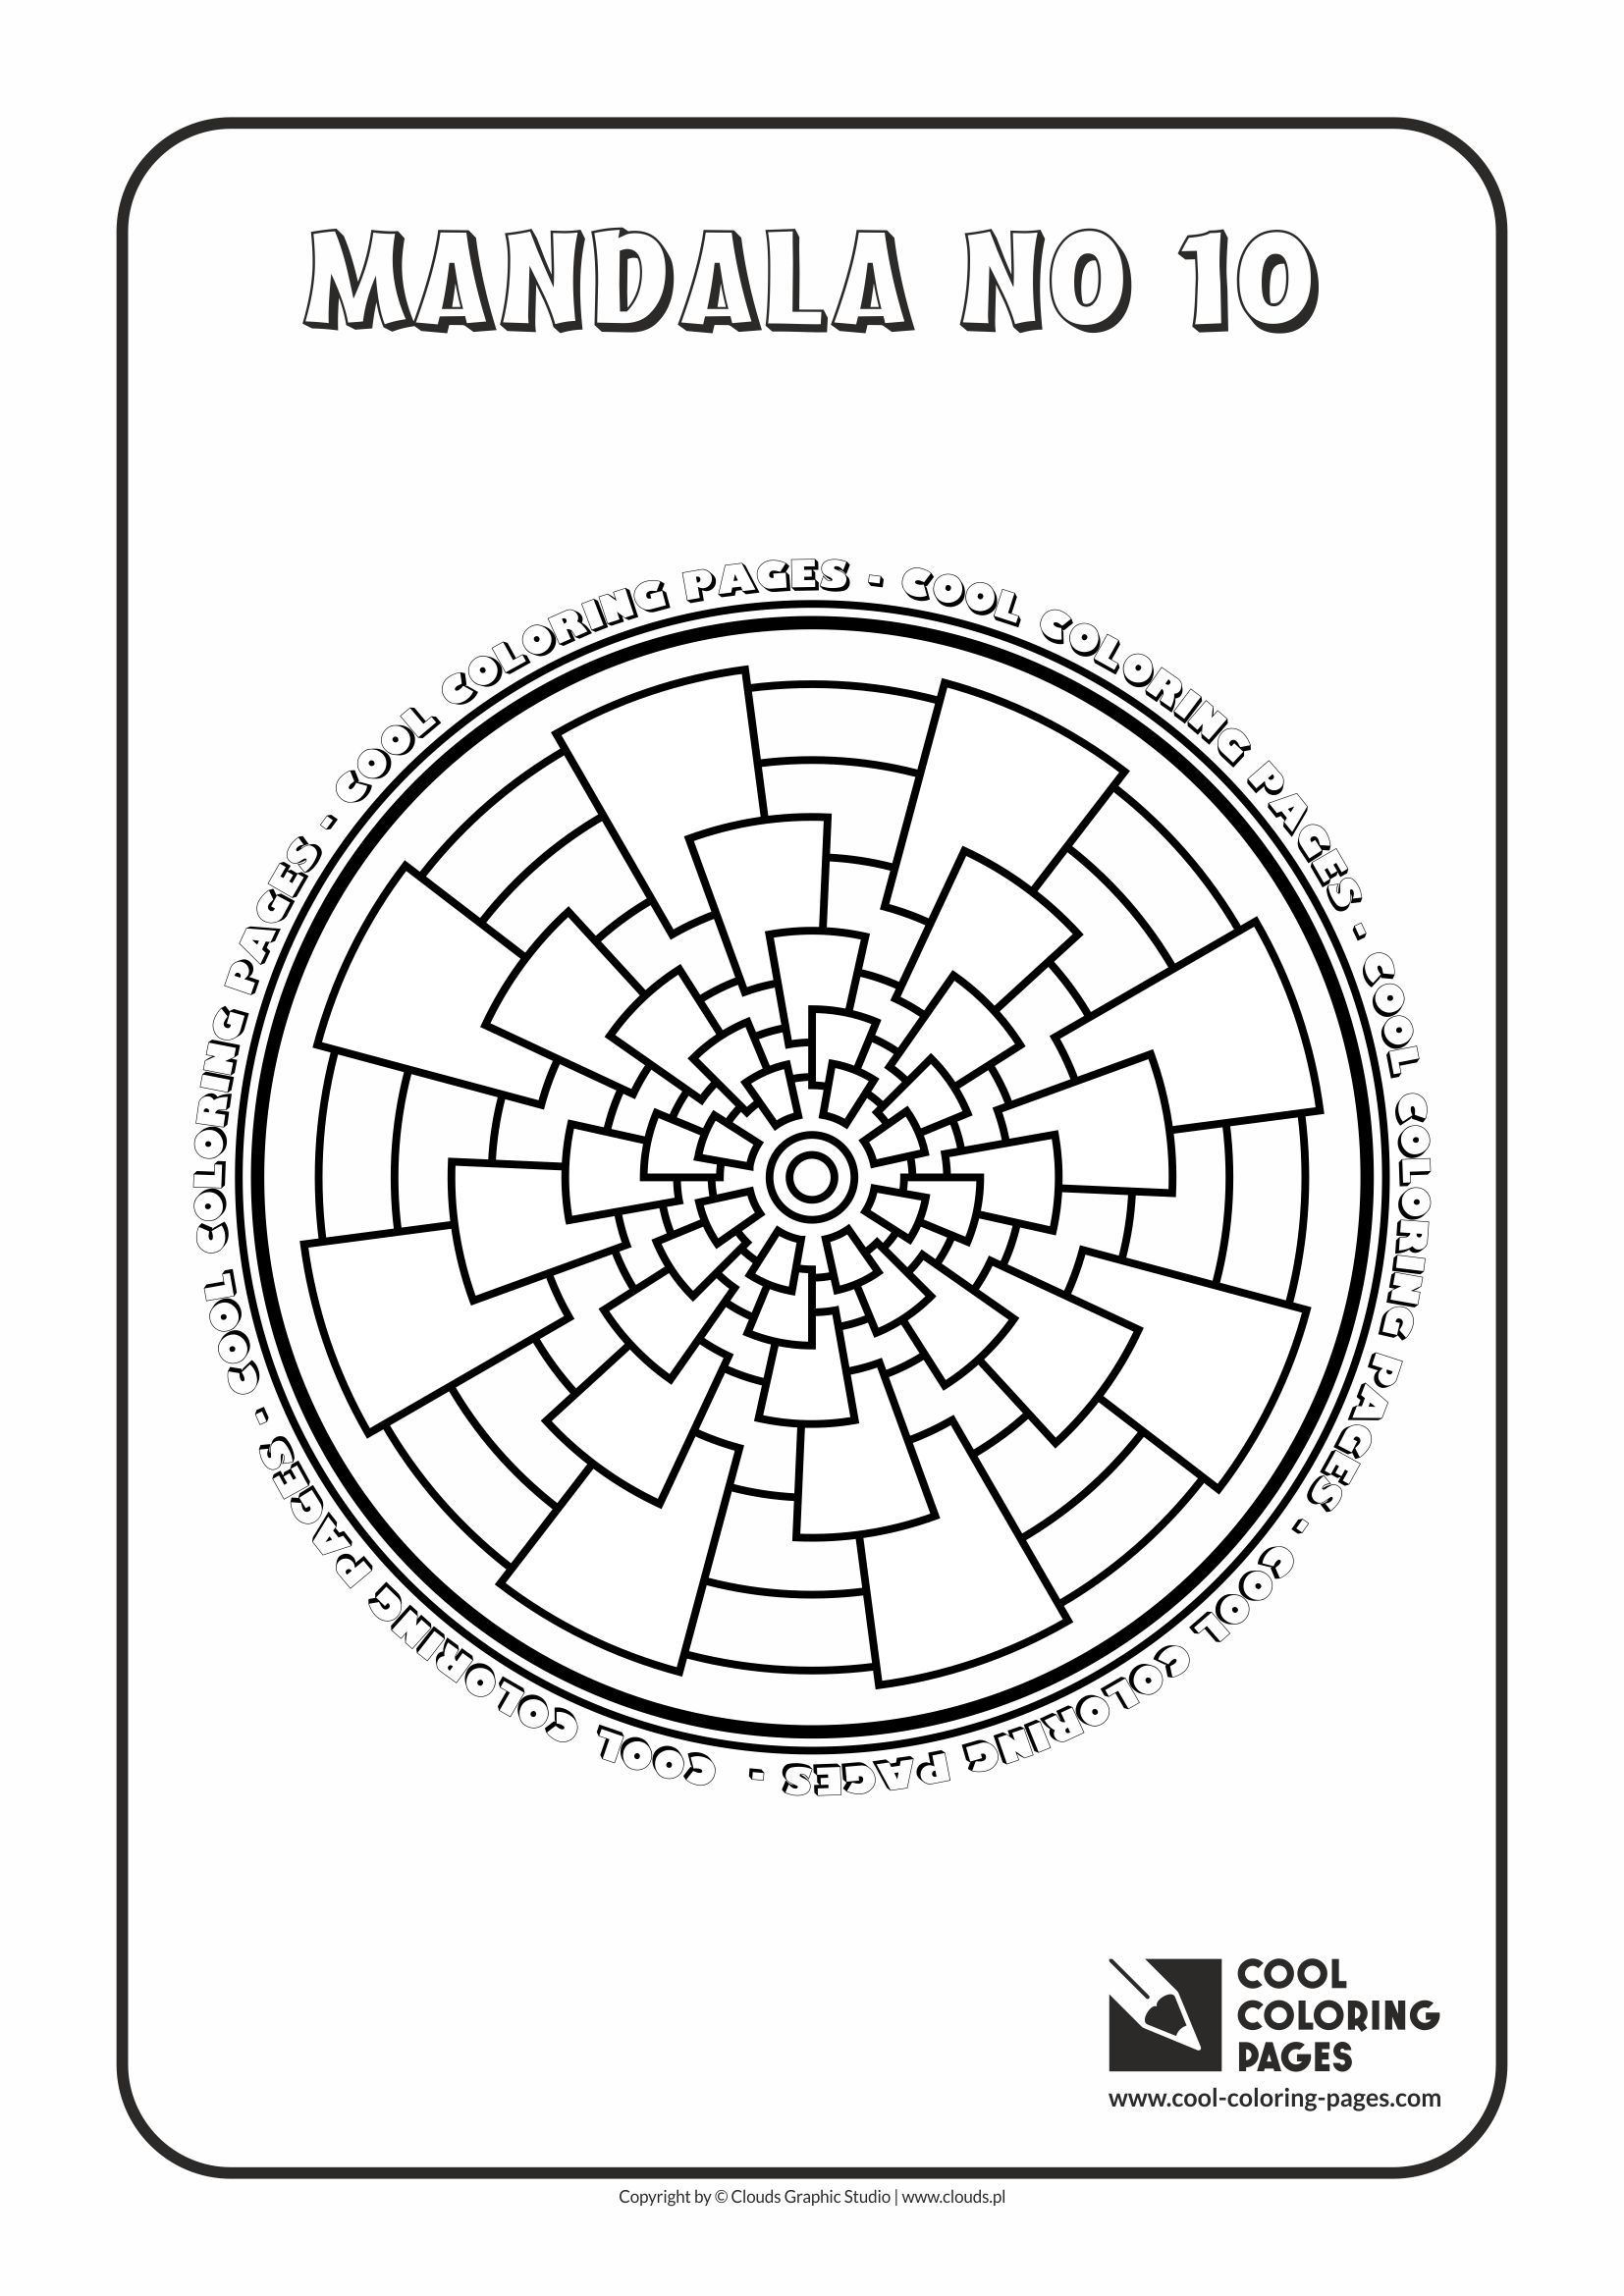 Cool Coloring Pages Mandalas Cool Coloring Pages Free